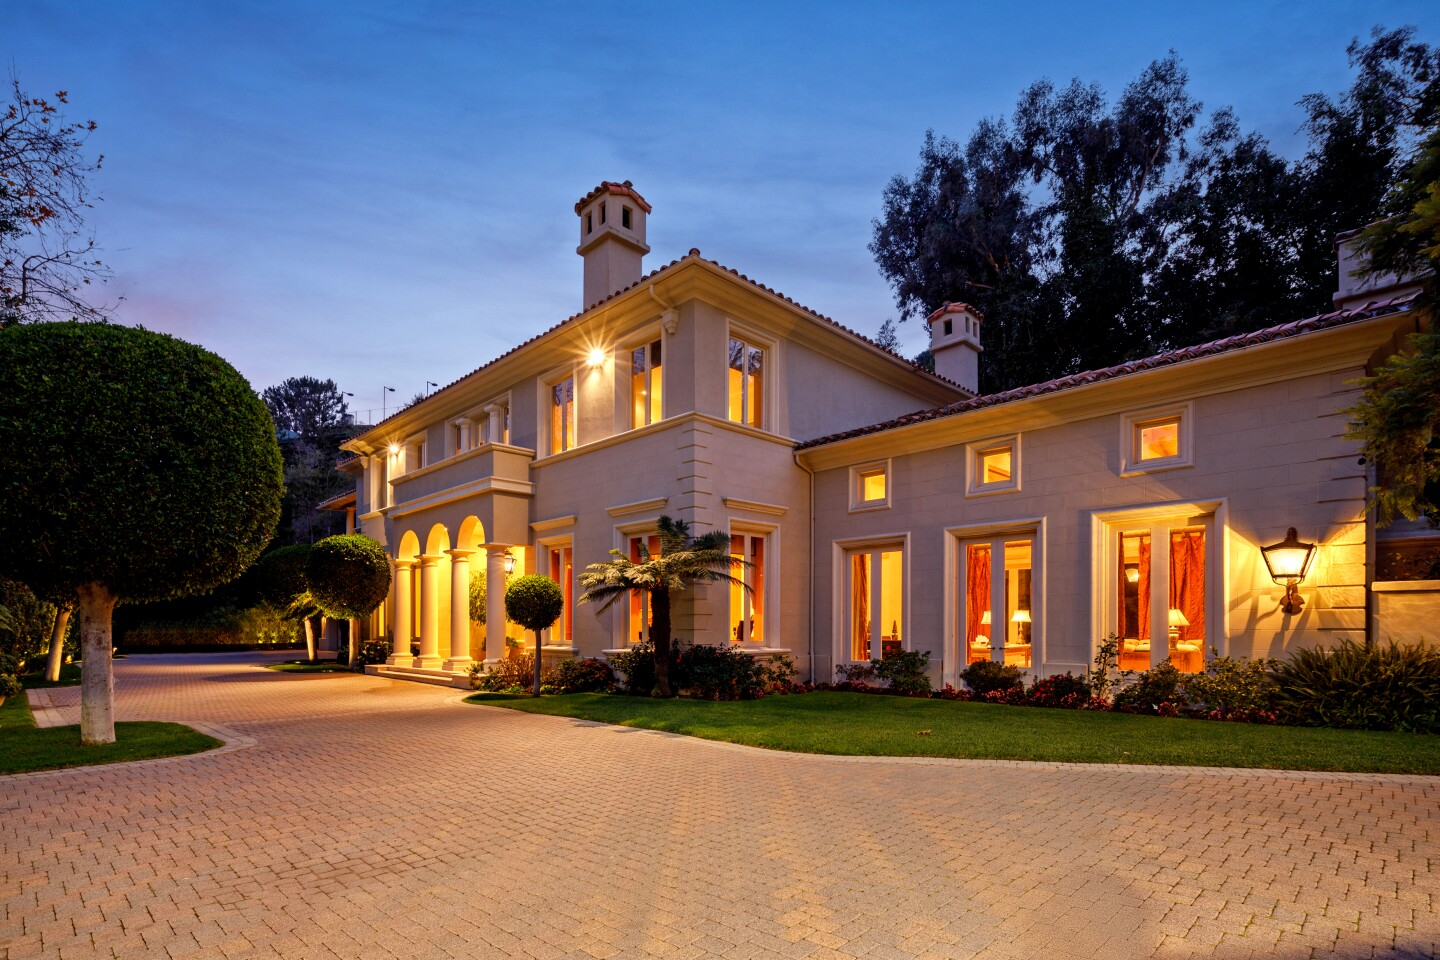 """The Bel-Air estate of late automobile titan Lee Iacocca sold for $19.5 million after listing for sale in January at about $26 million. The Iacocca family were the original owners of the property, which sits on more than an acre with a swimming pool, gardens and a tennis court. Among features of the Italianate-vibe house are five fireplaces, a foyer with arched ceilings and a grand living room. French doors open onto a stone pavilion. The estate on Chalon Road entered escrow amid the pandemic in March and sold a month later to Lilly Halichi and Dara Mir, who appear on""""Shahs of Sunset."""""""